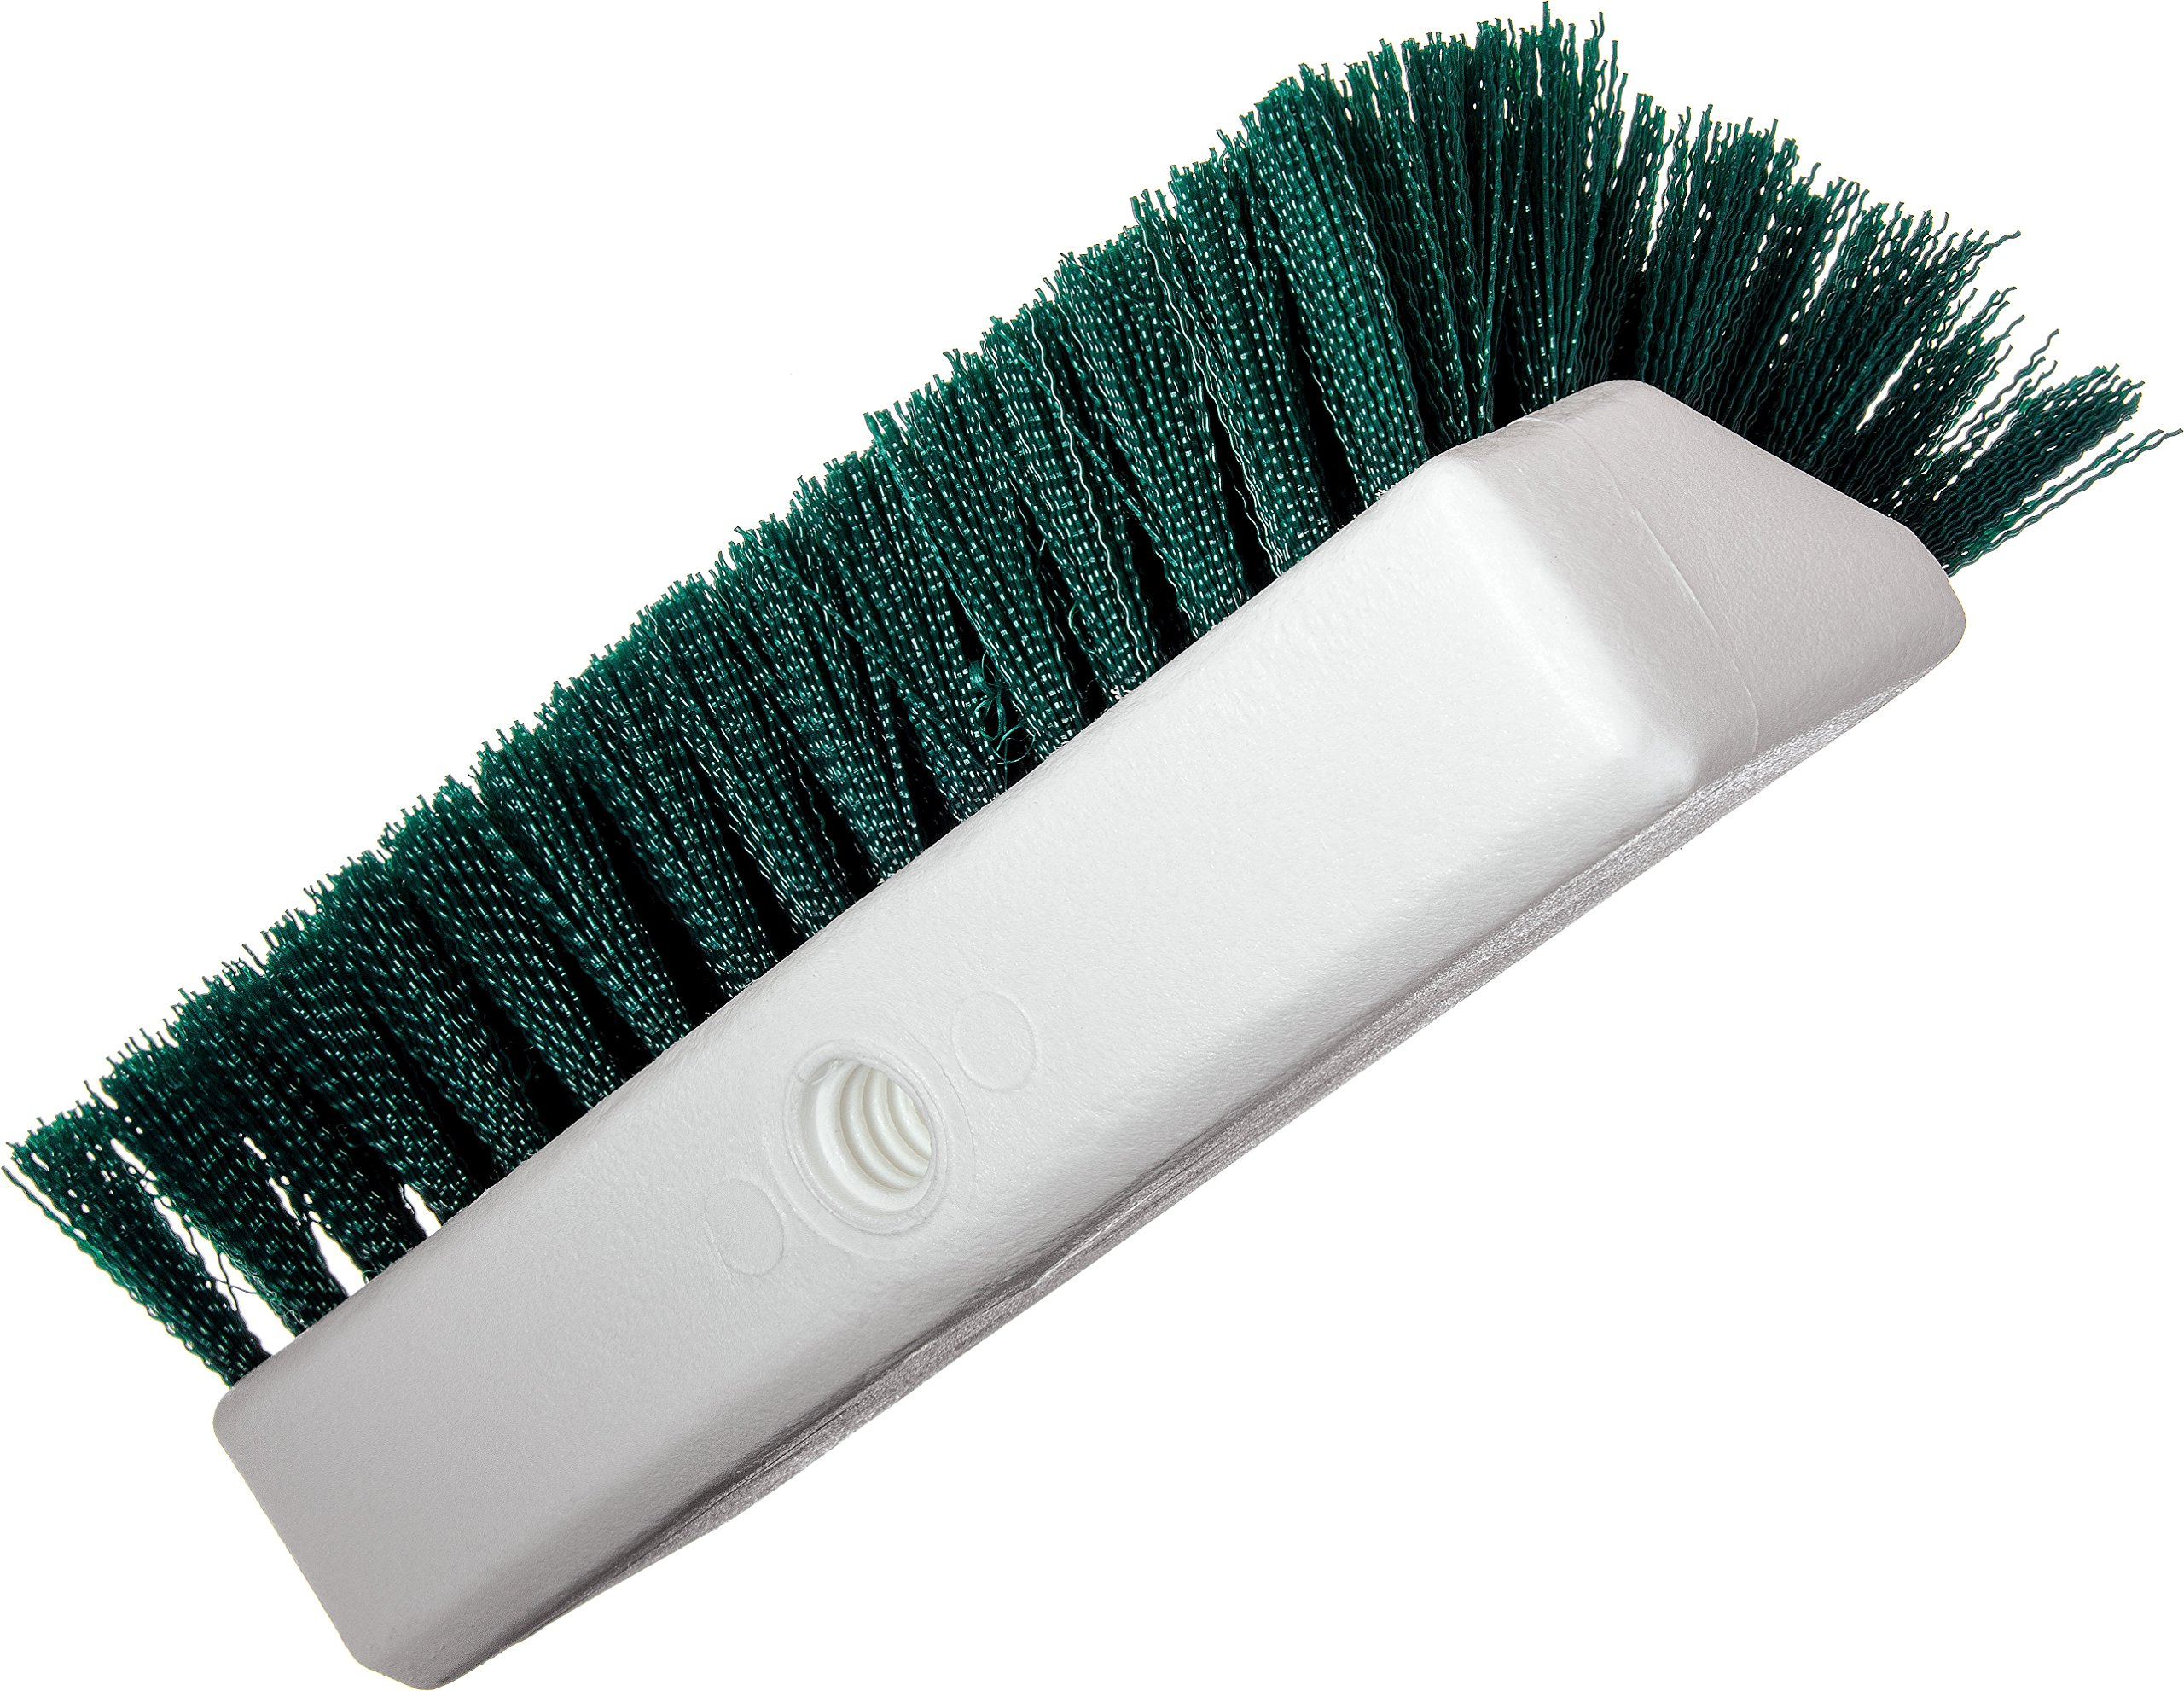 Carlisle 4042309 Hi-Lo Floor Scrub Brush, Green (Pack of 12) by Carlisle (Image #3)